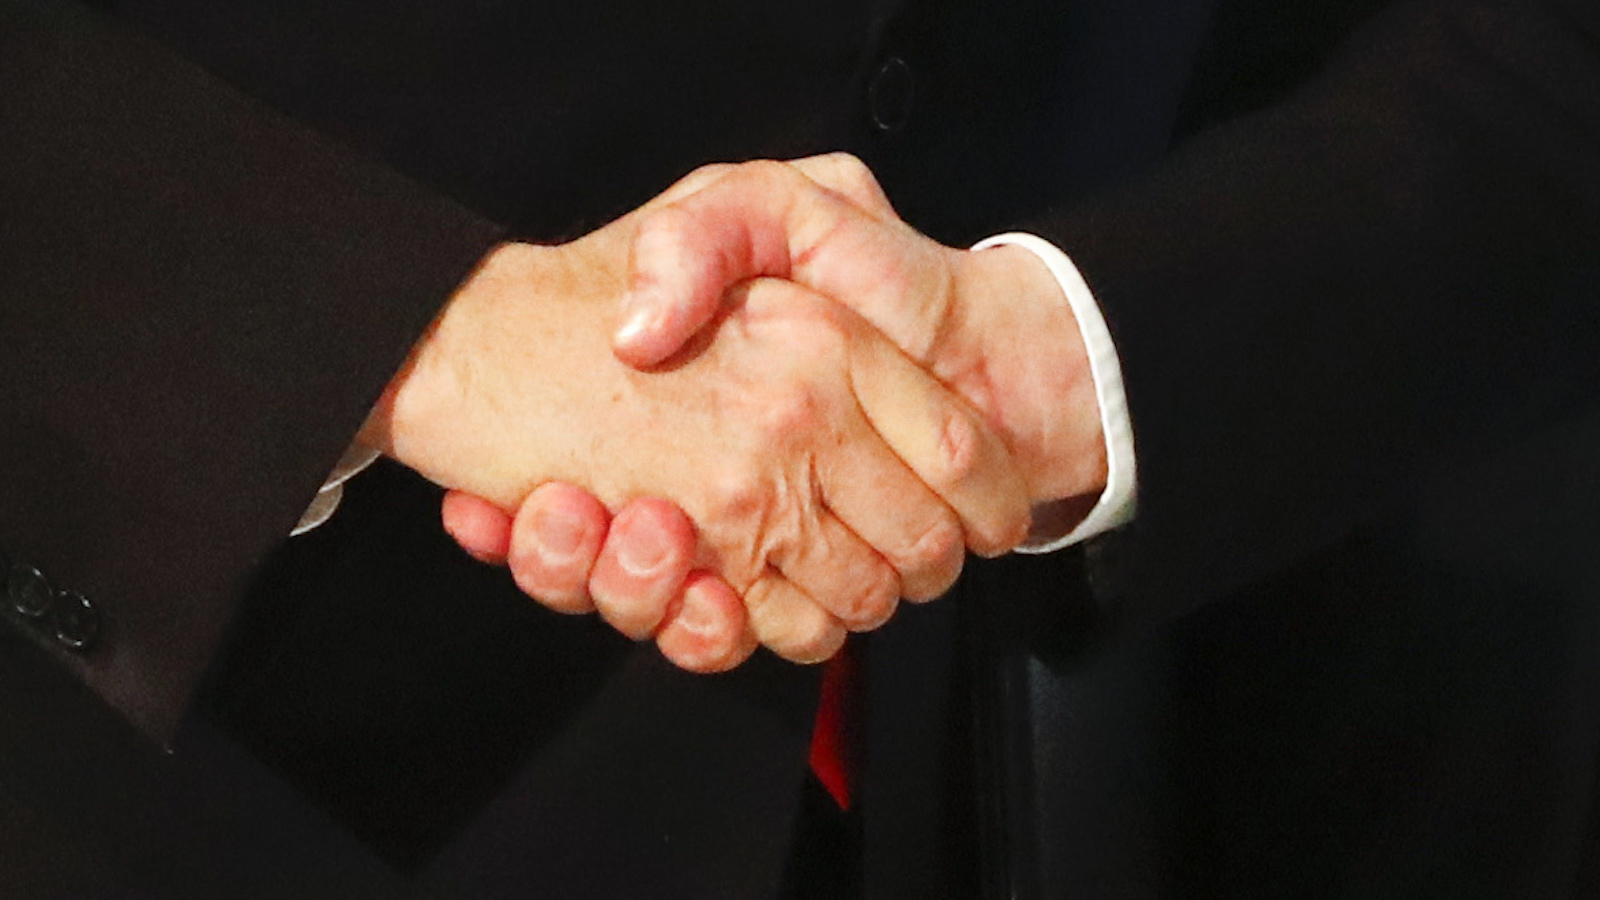 two white men in suits shaking hands